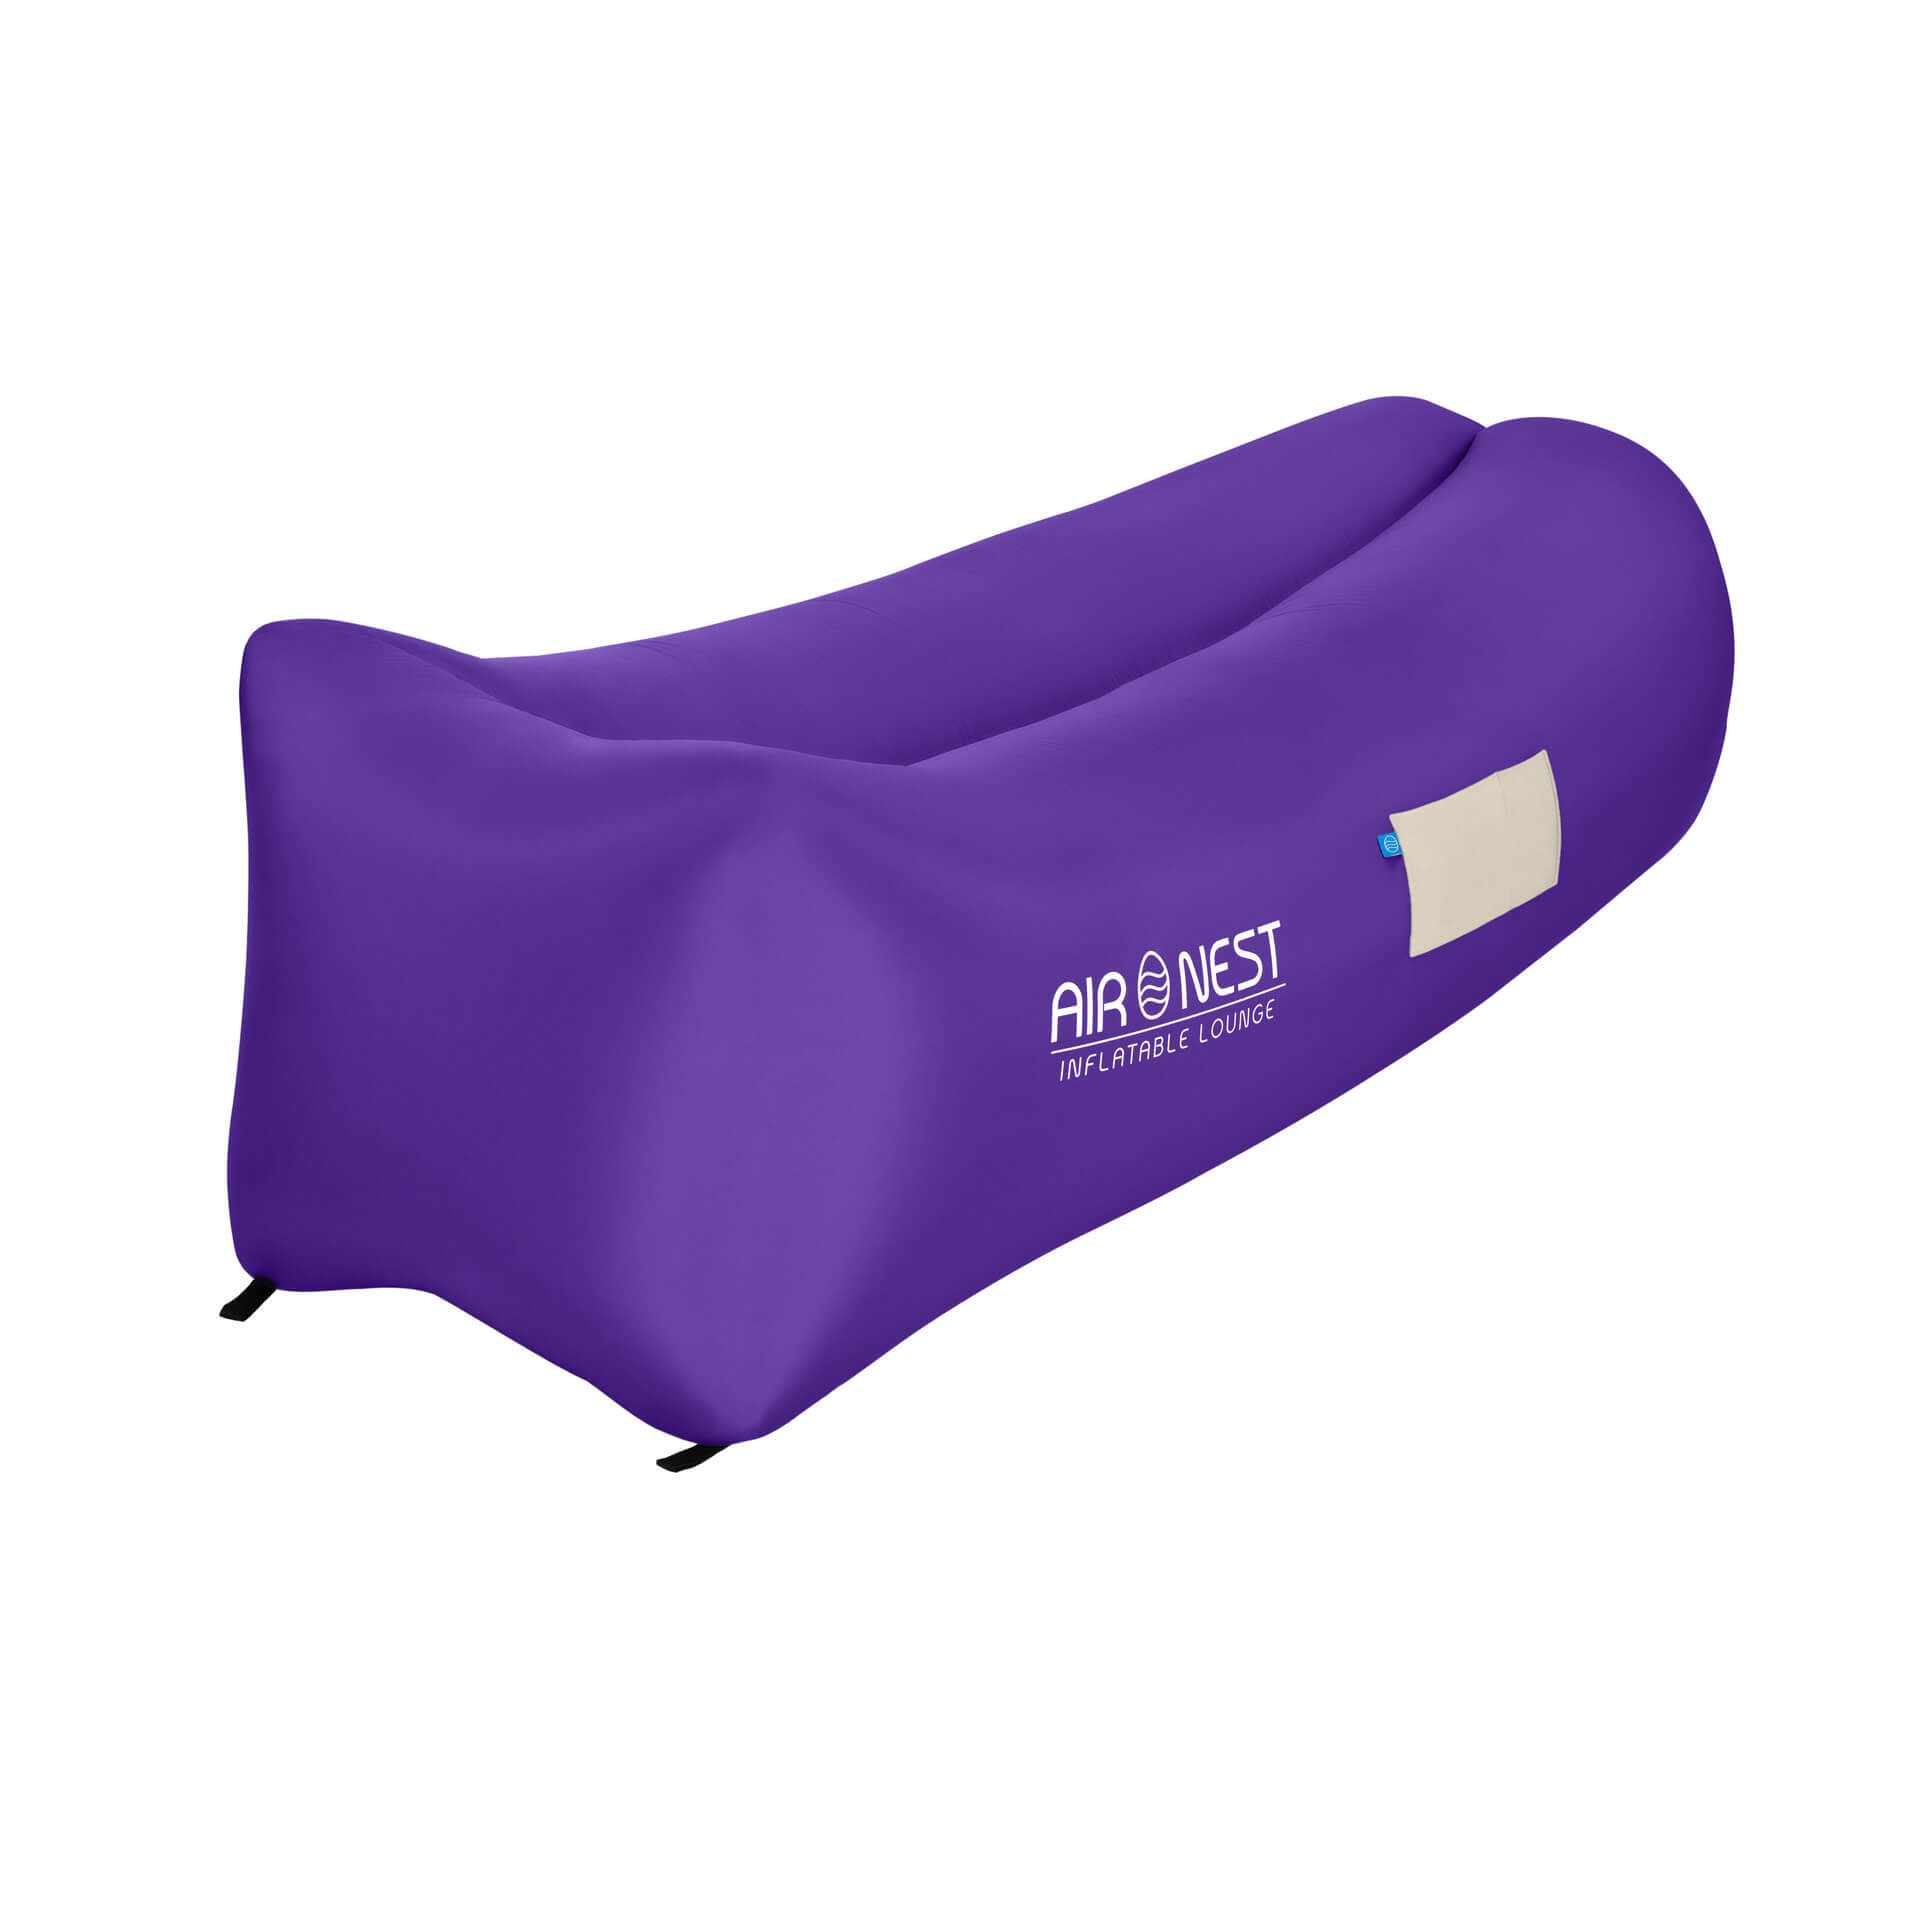 air-nest-best-inflatable-lounger-purple-dream